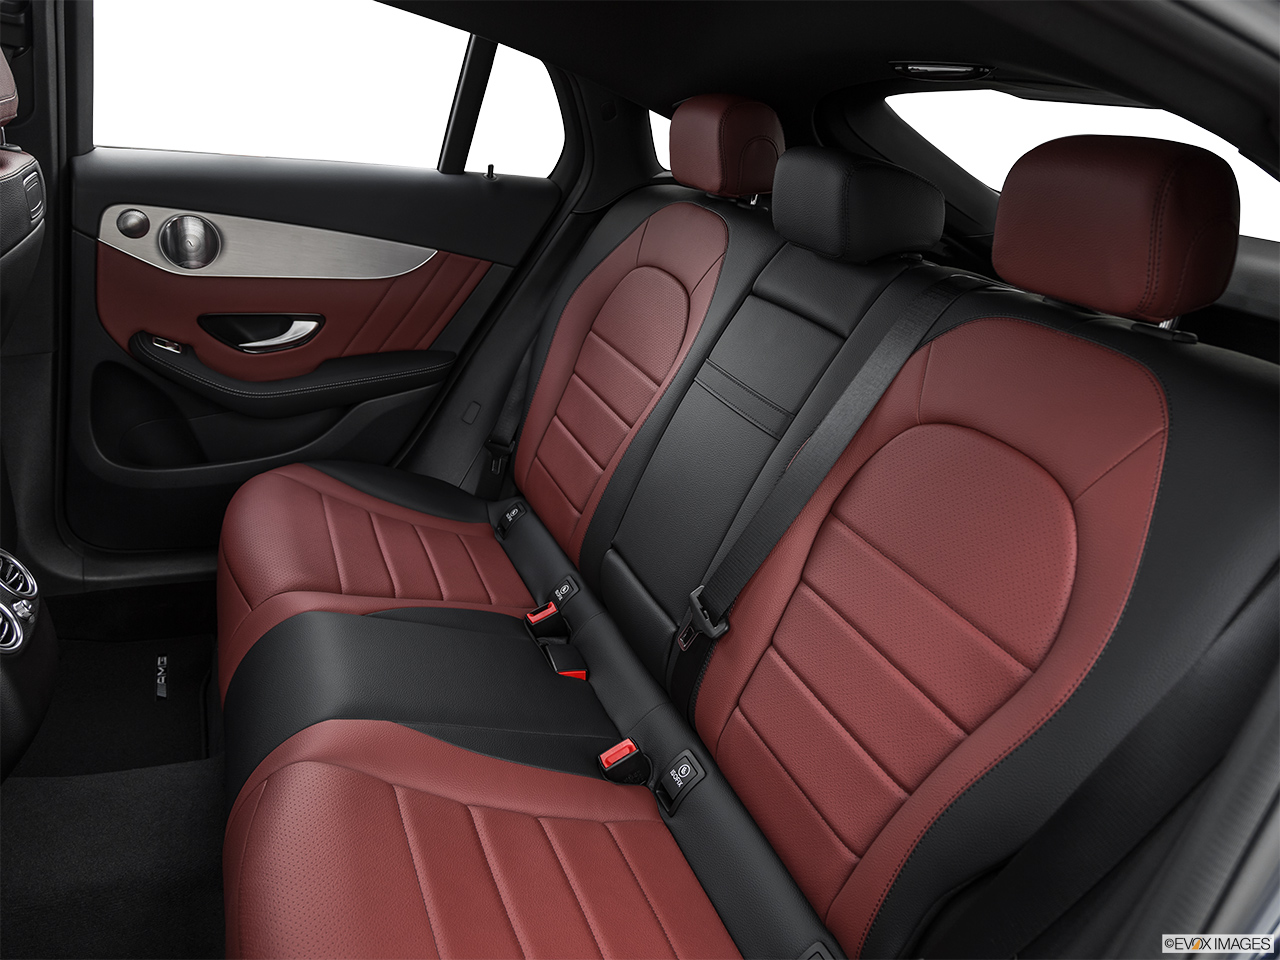 2019 Mercedes-Benz GLC-Class Coupe GLC 300 4MATIC Rear seats from Drivers Side.